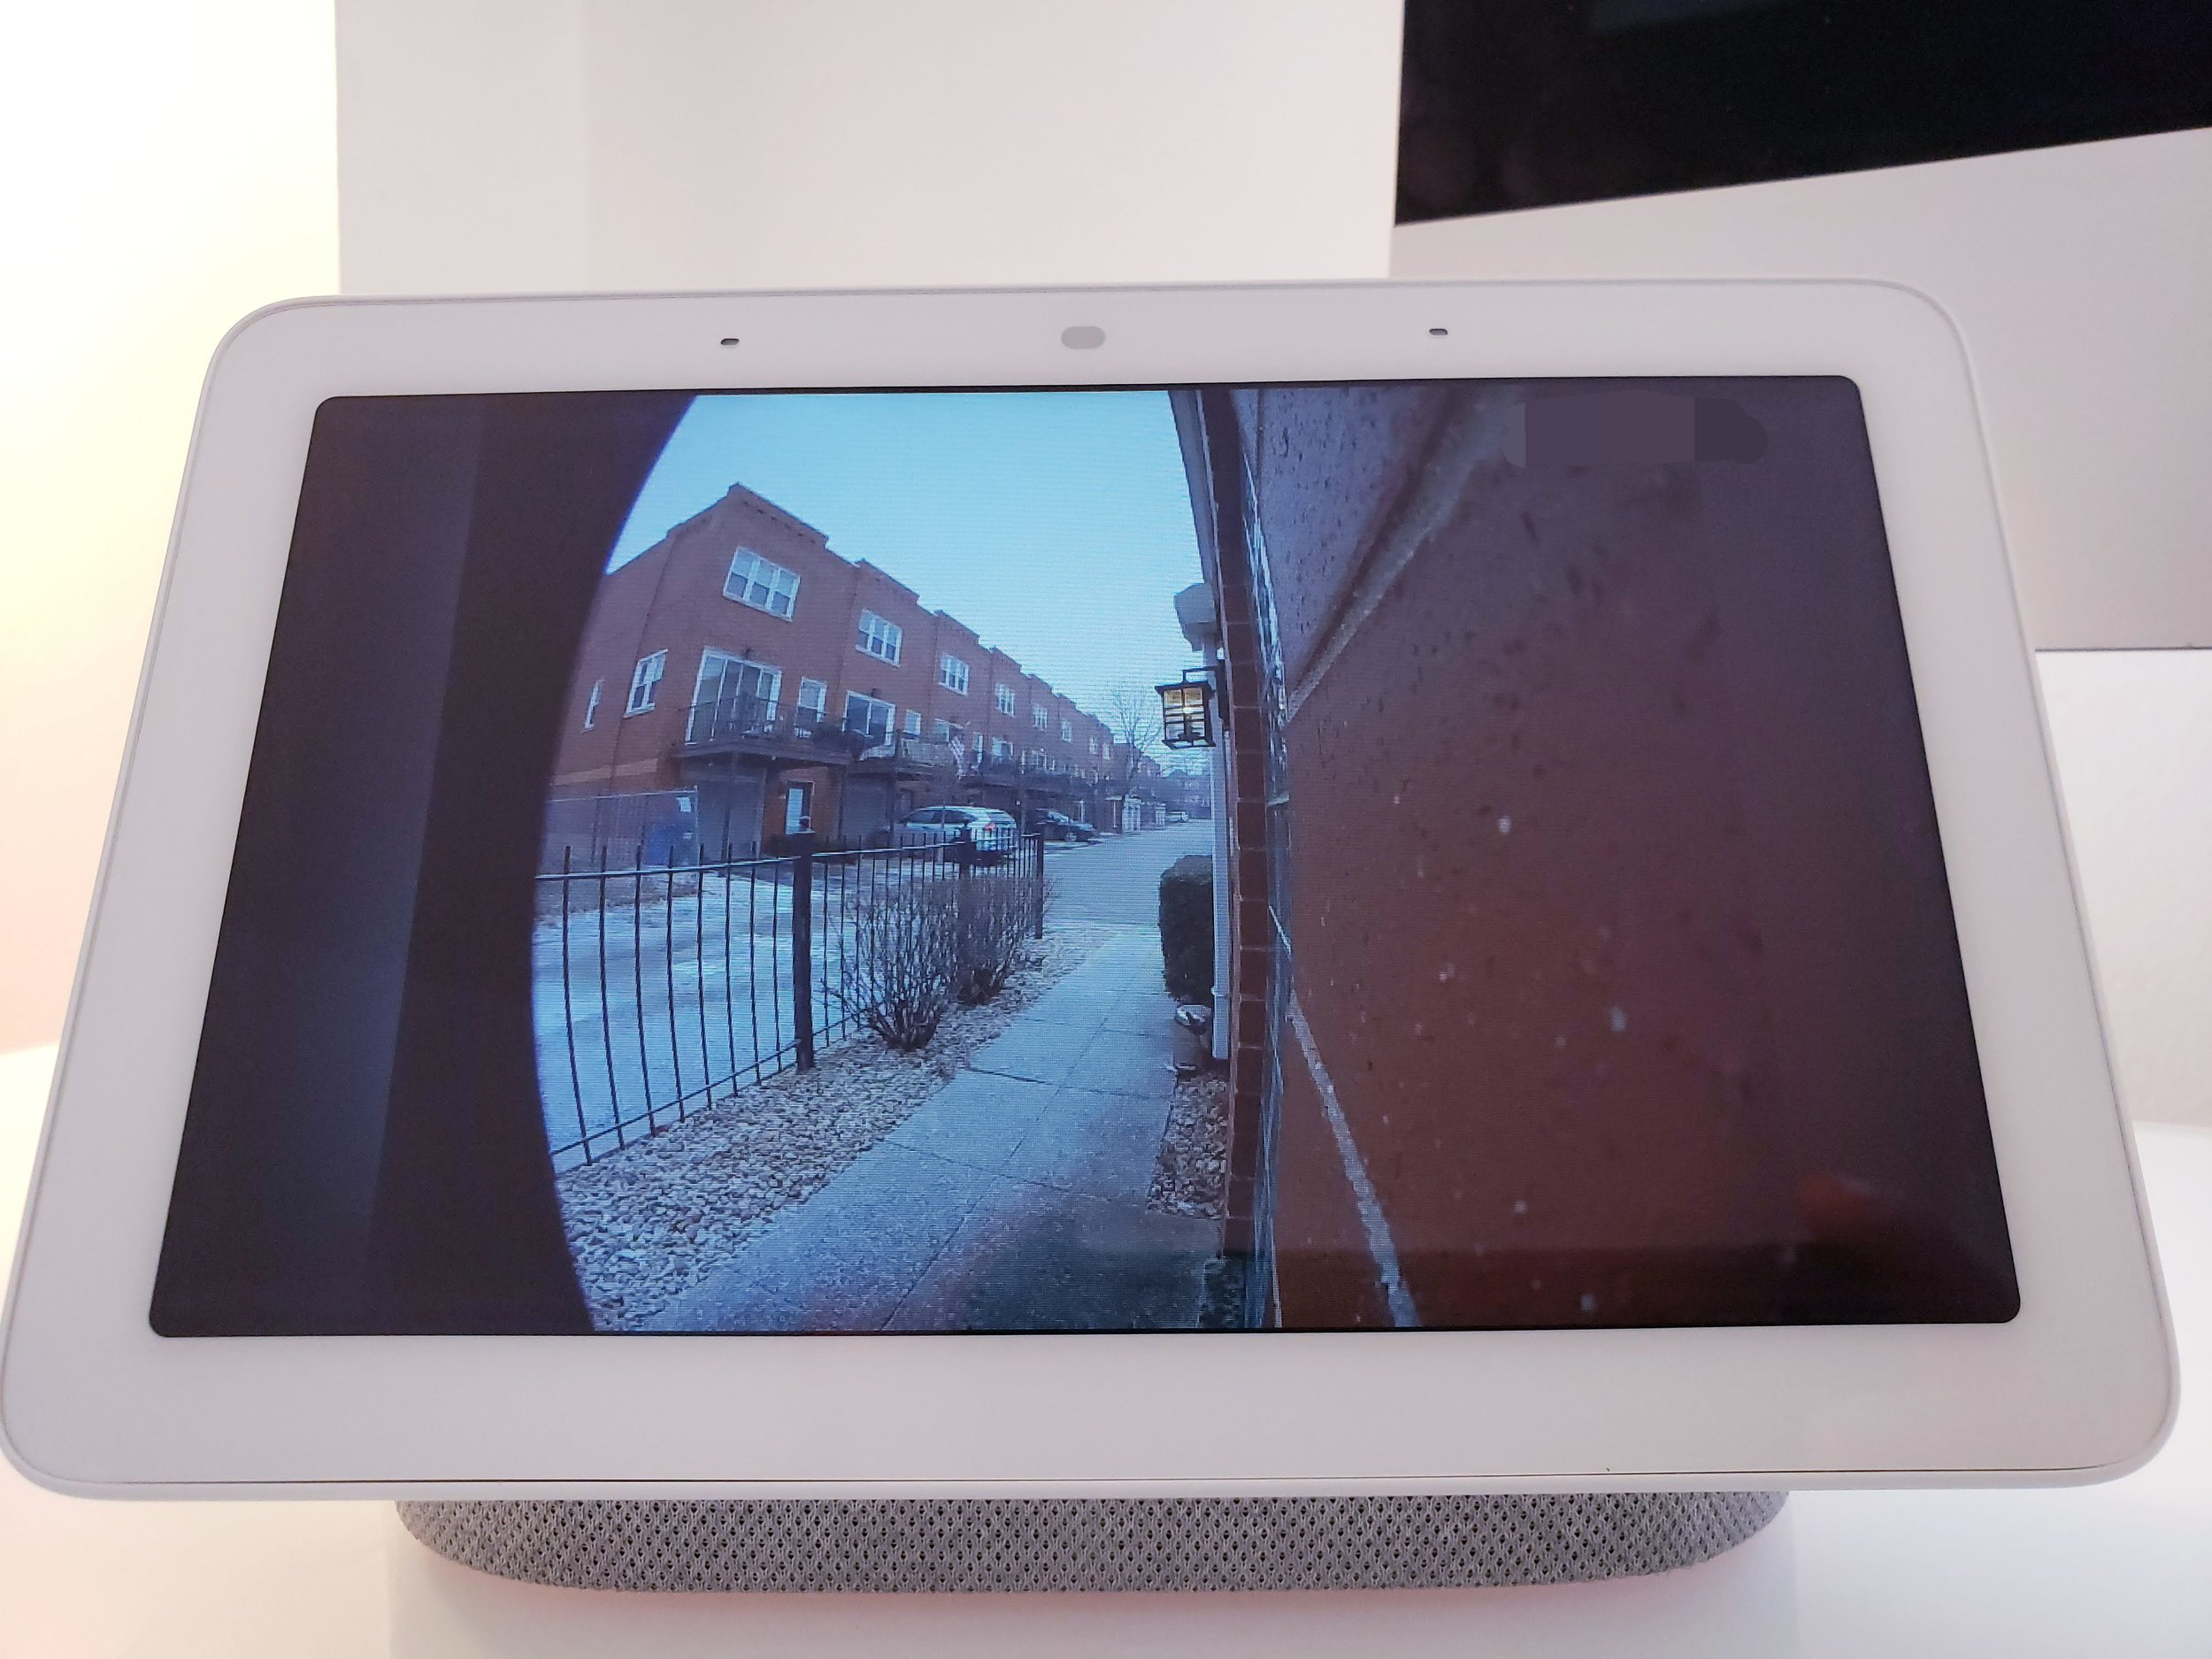 You can stream live video from  arlo cameras  on  google home hub .